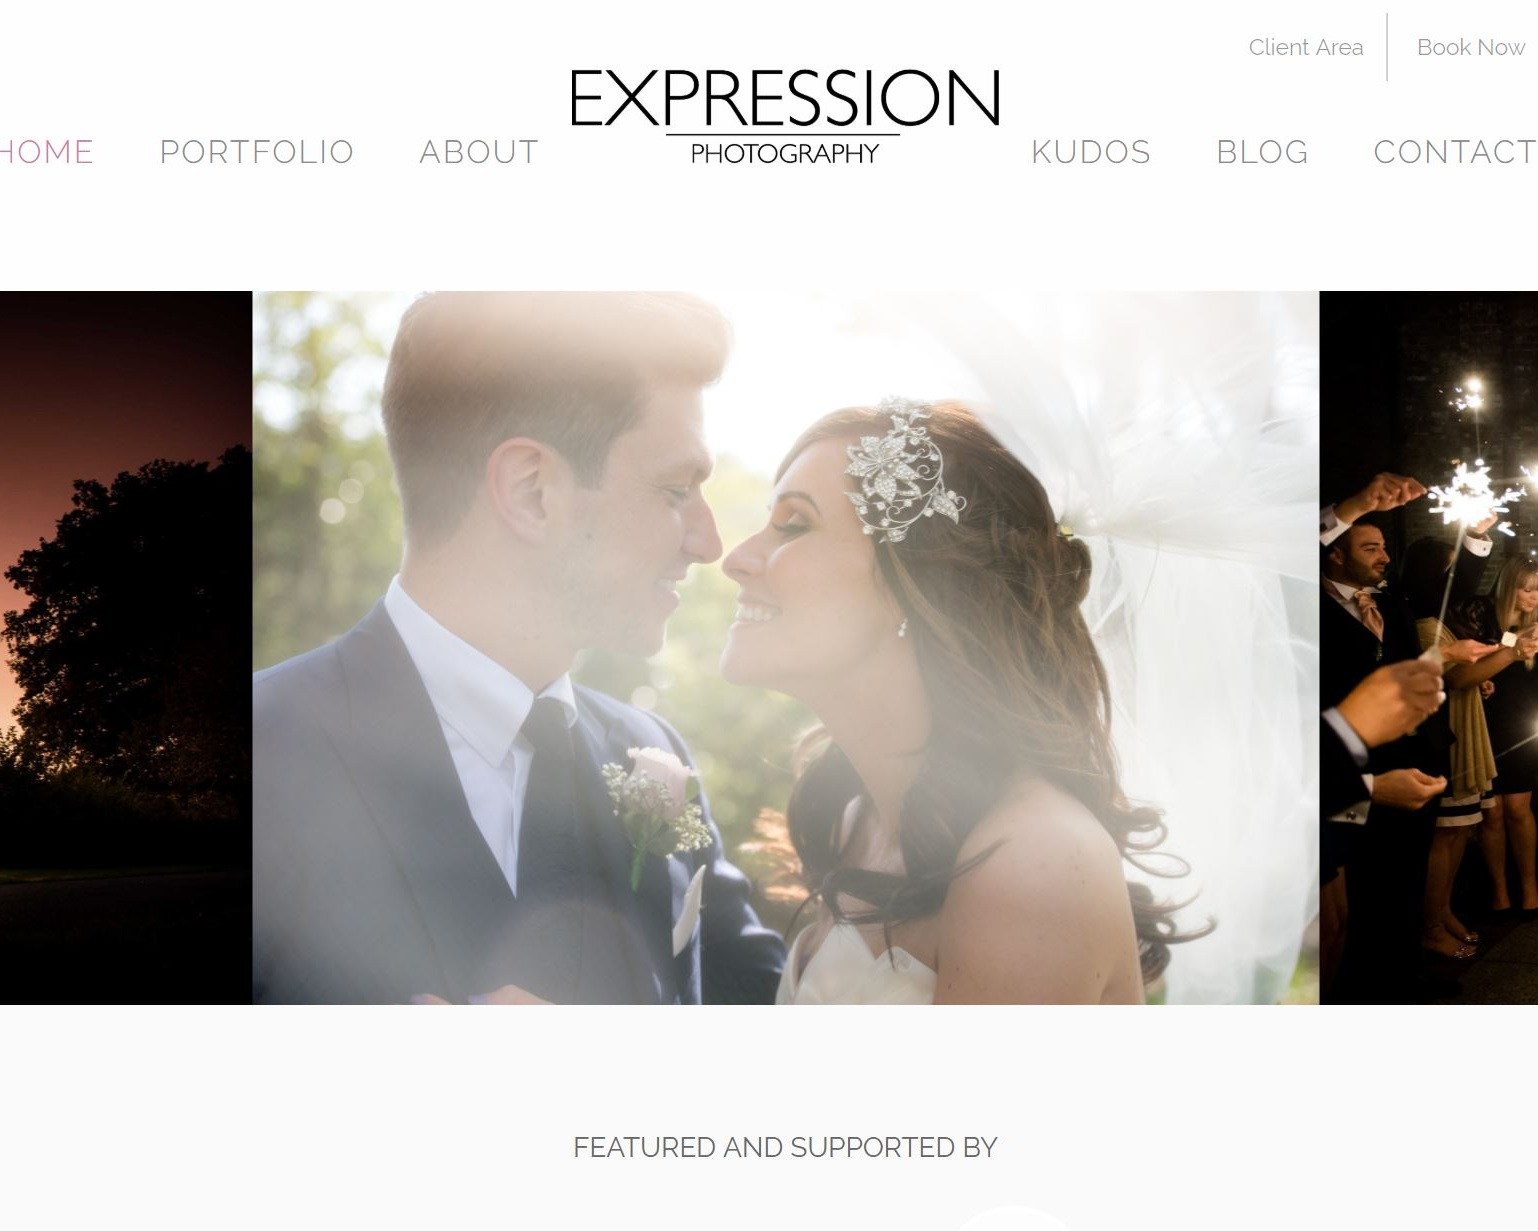 Expression Photography - Award winning husband and wife team who offer our clients beautiful, contemporary wedding photography along with an amazing wedding day experience.